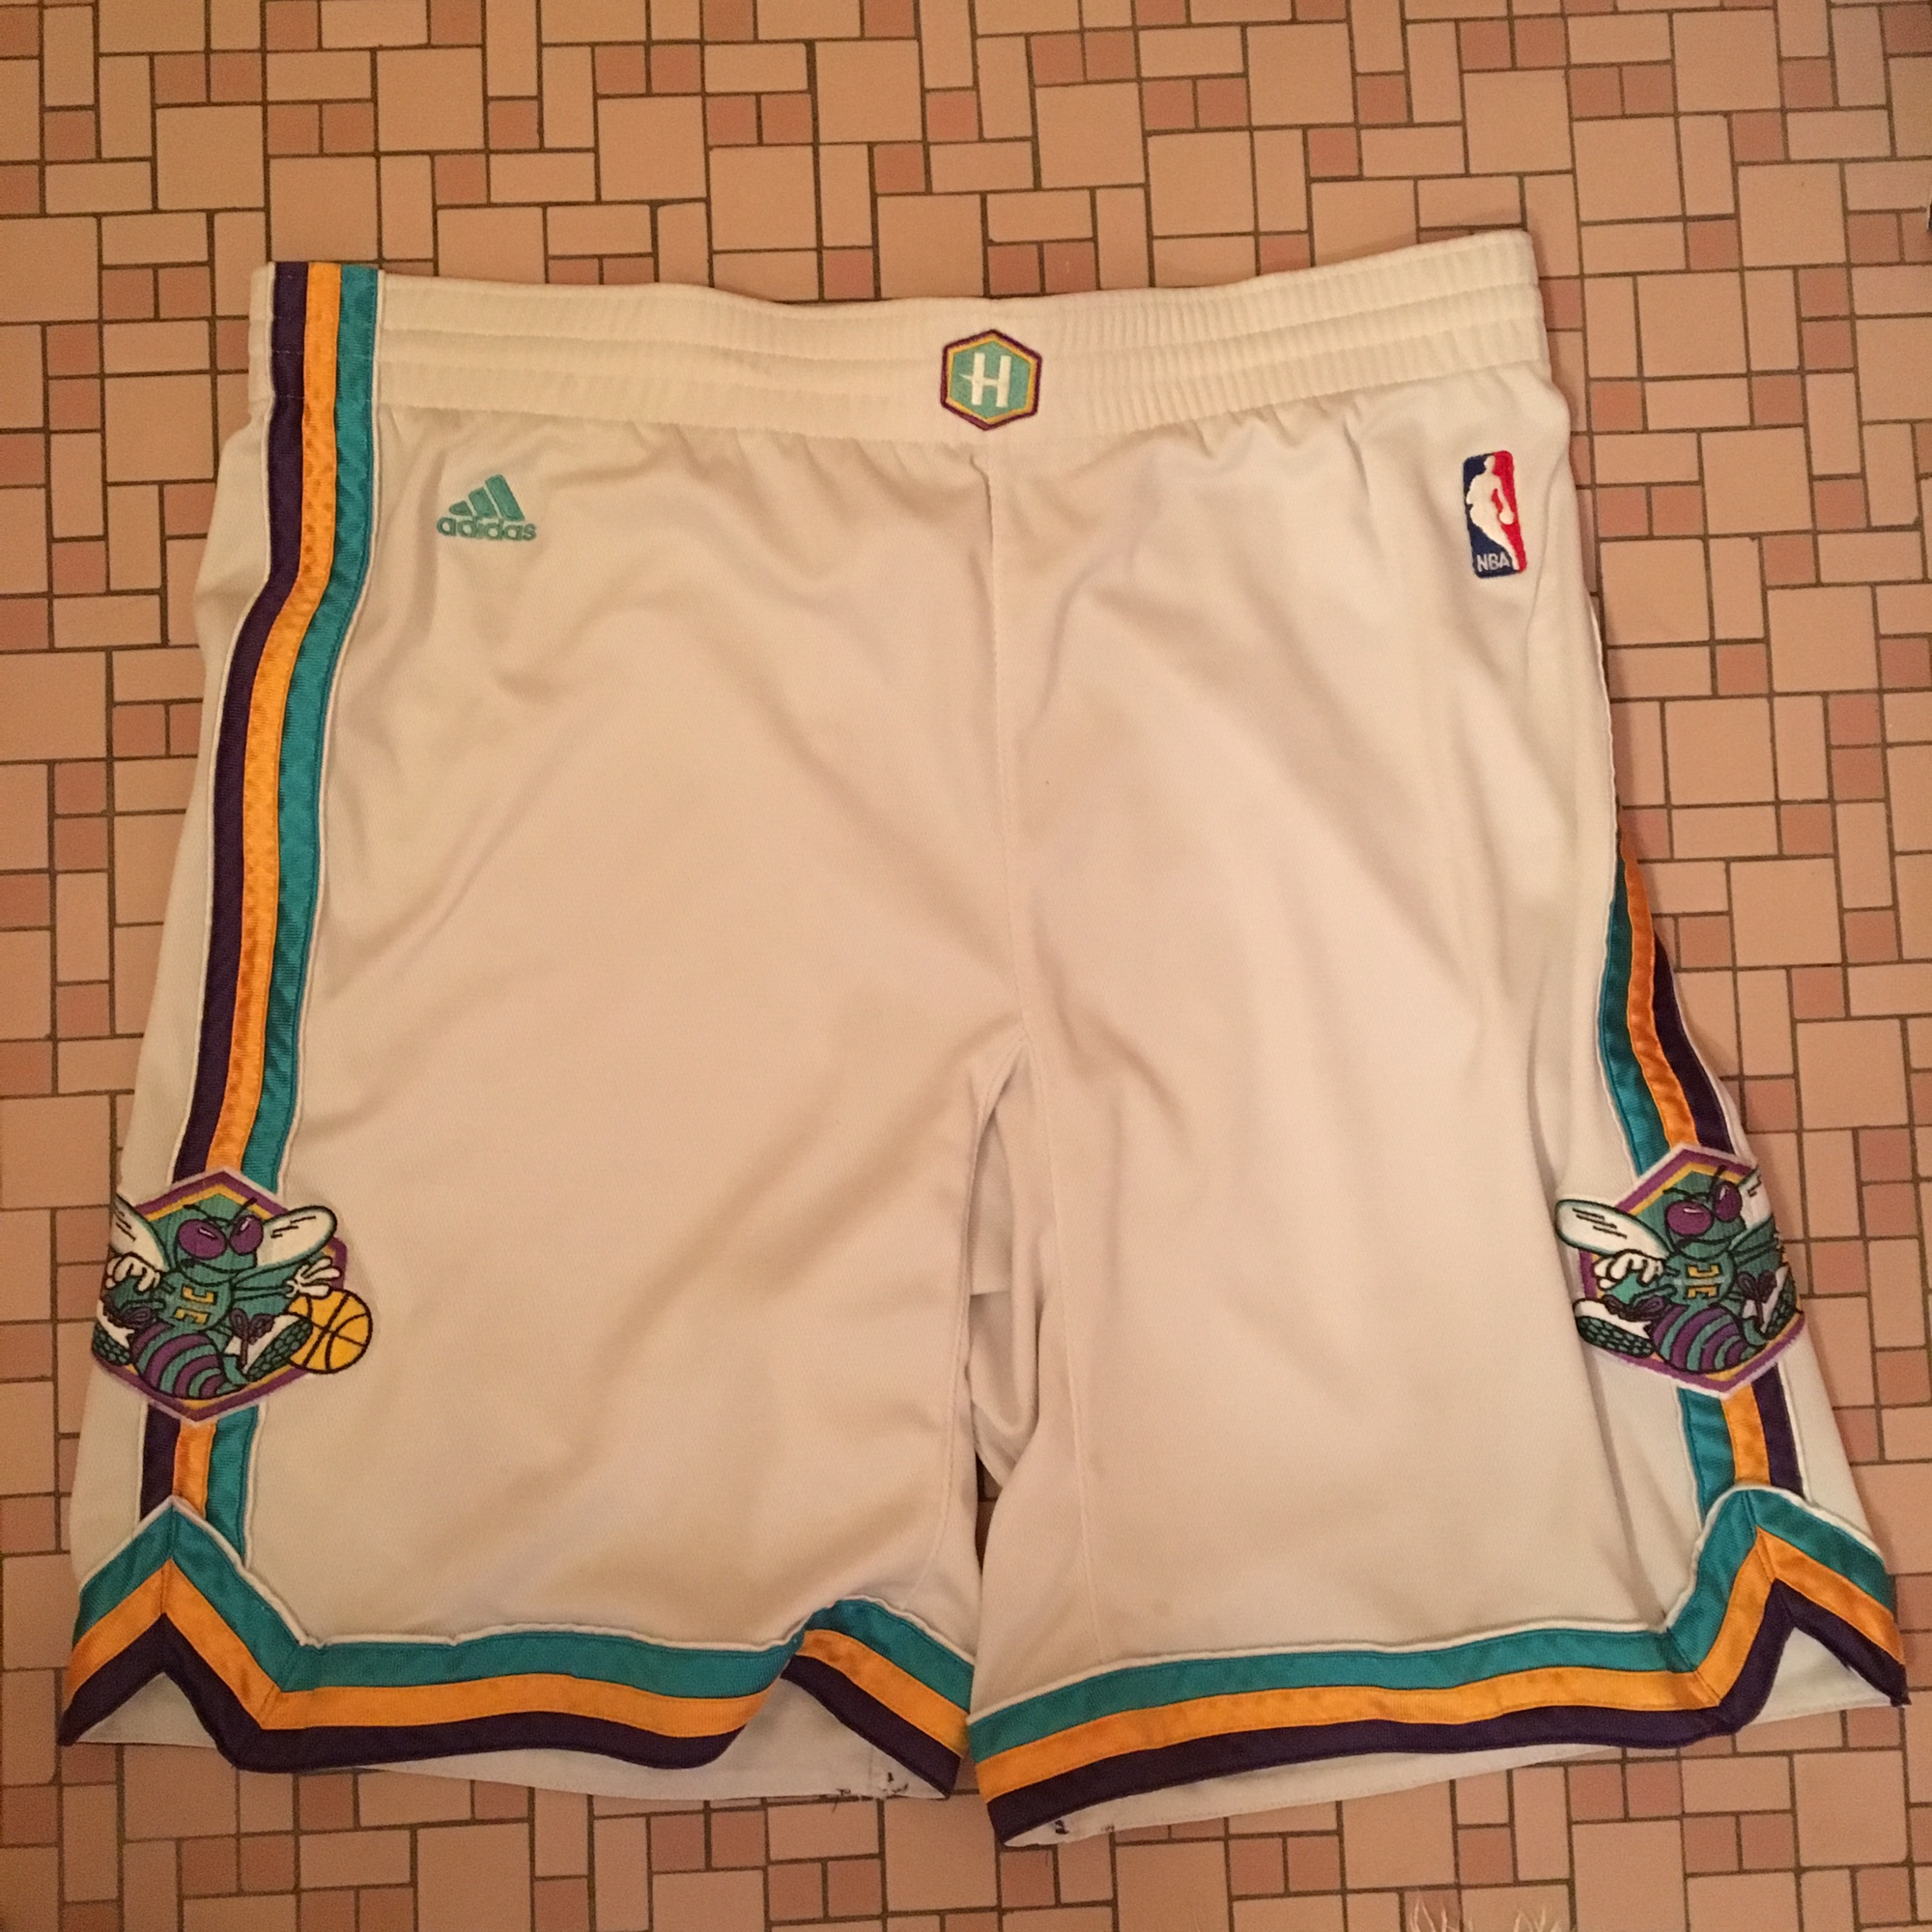 Vintage Adidas New Orleans Hornets Nba Shorts Great Depop